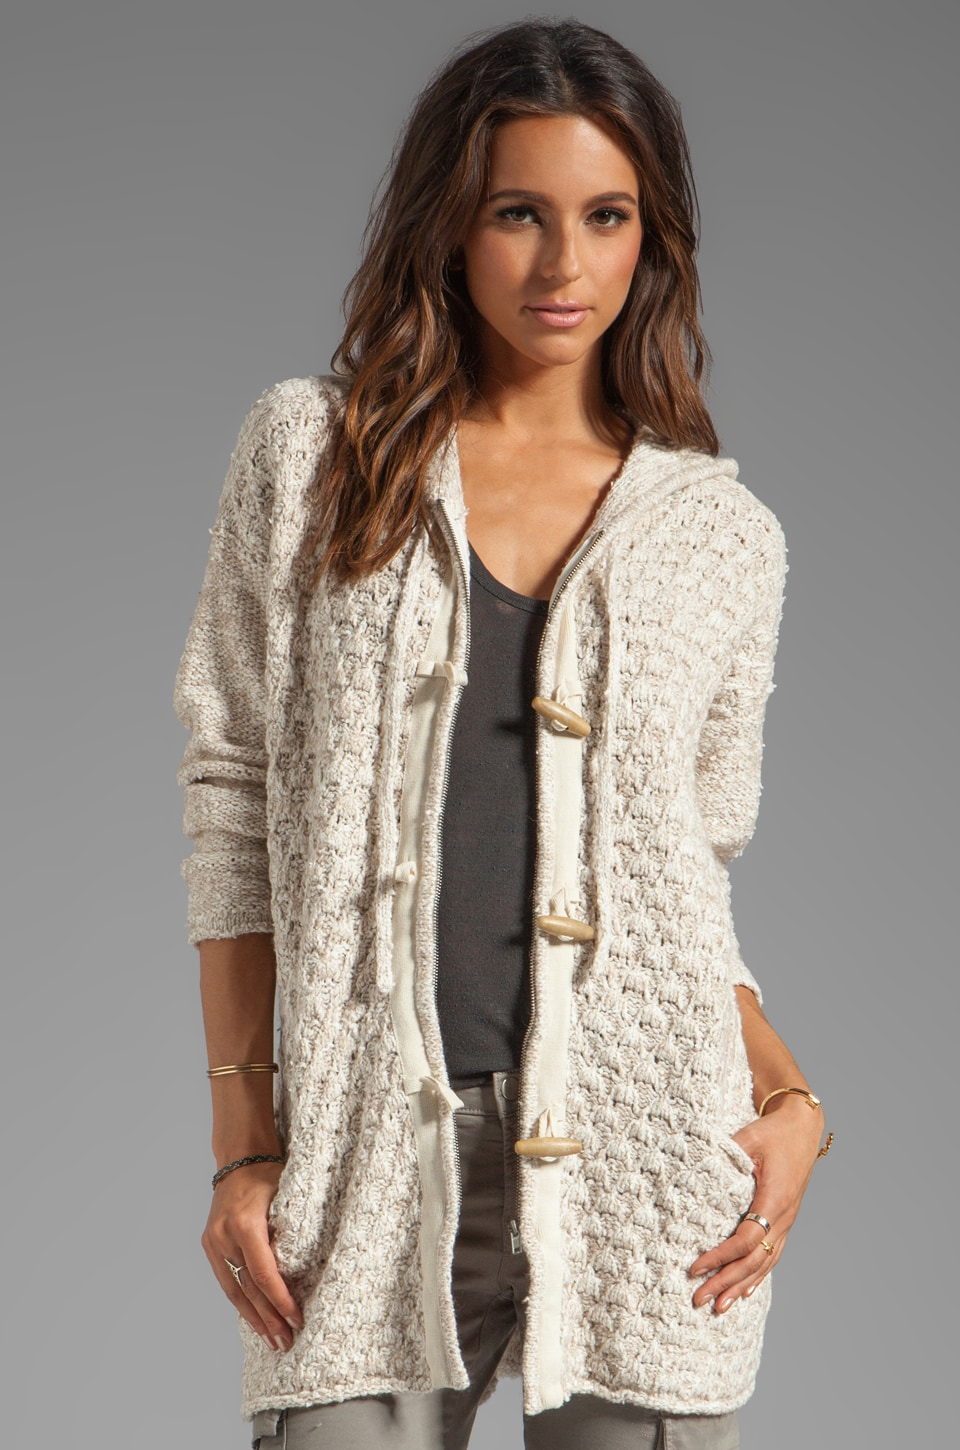 Free People Turn up the Sun Toggle Coat in Oatmeal